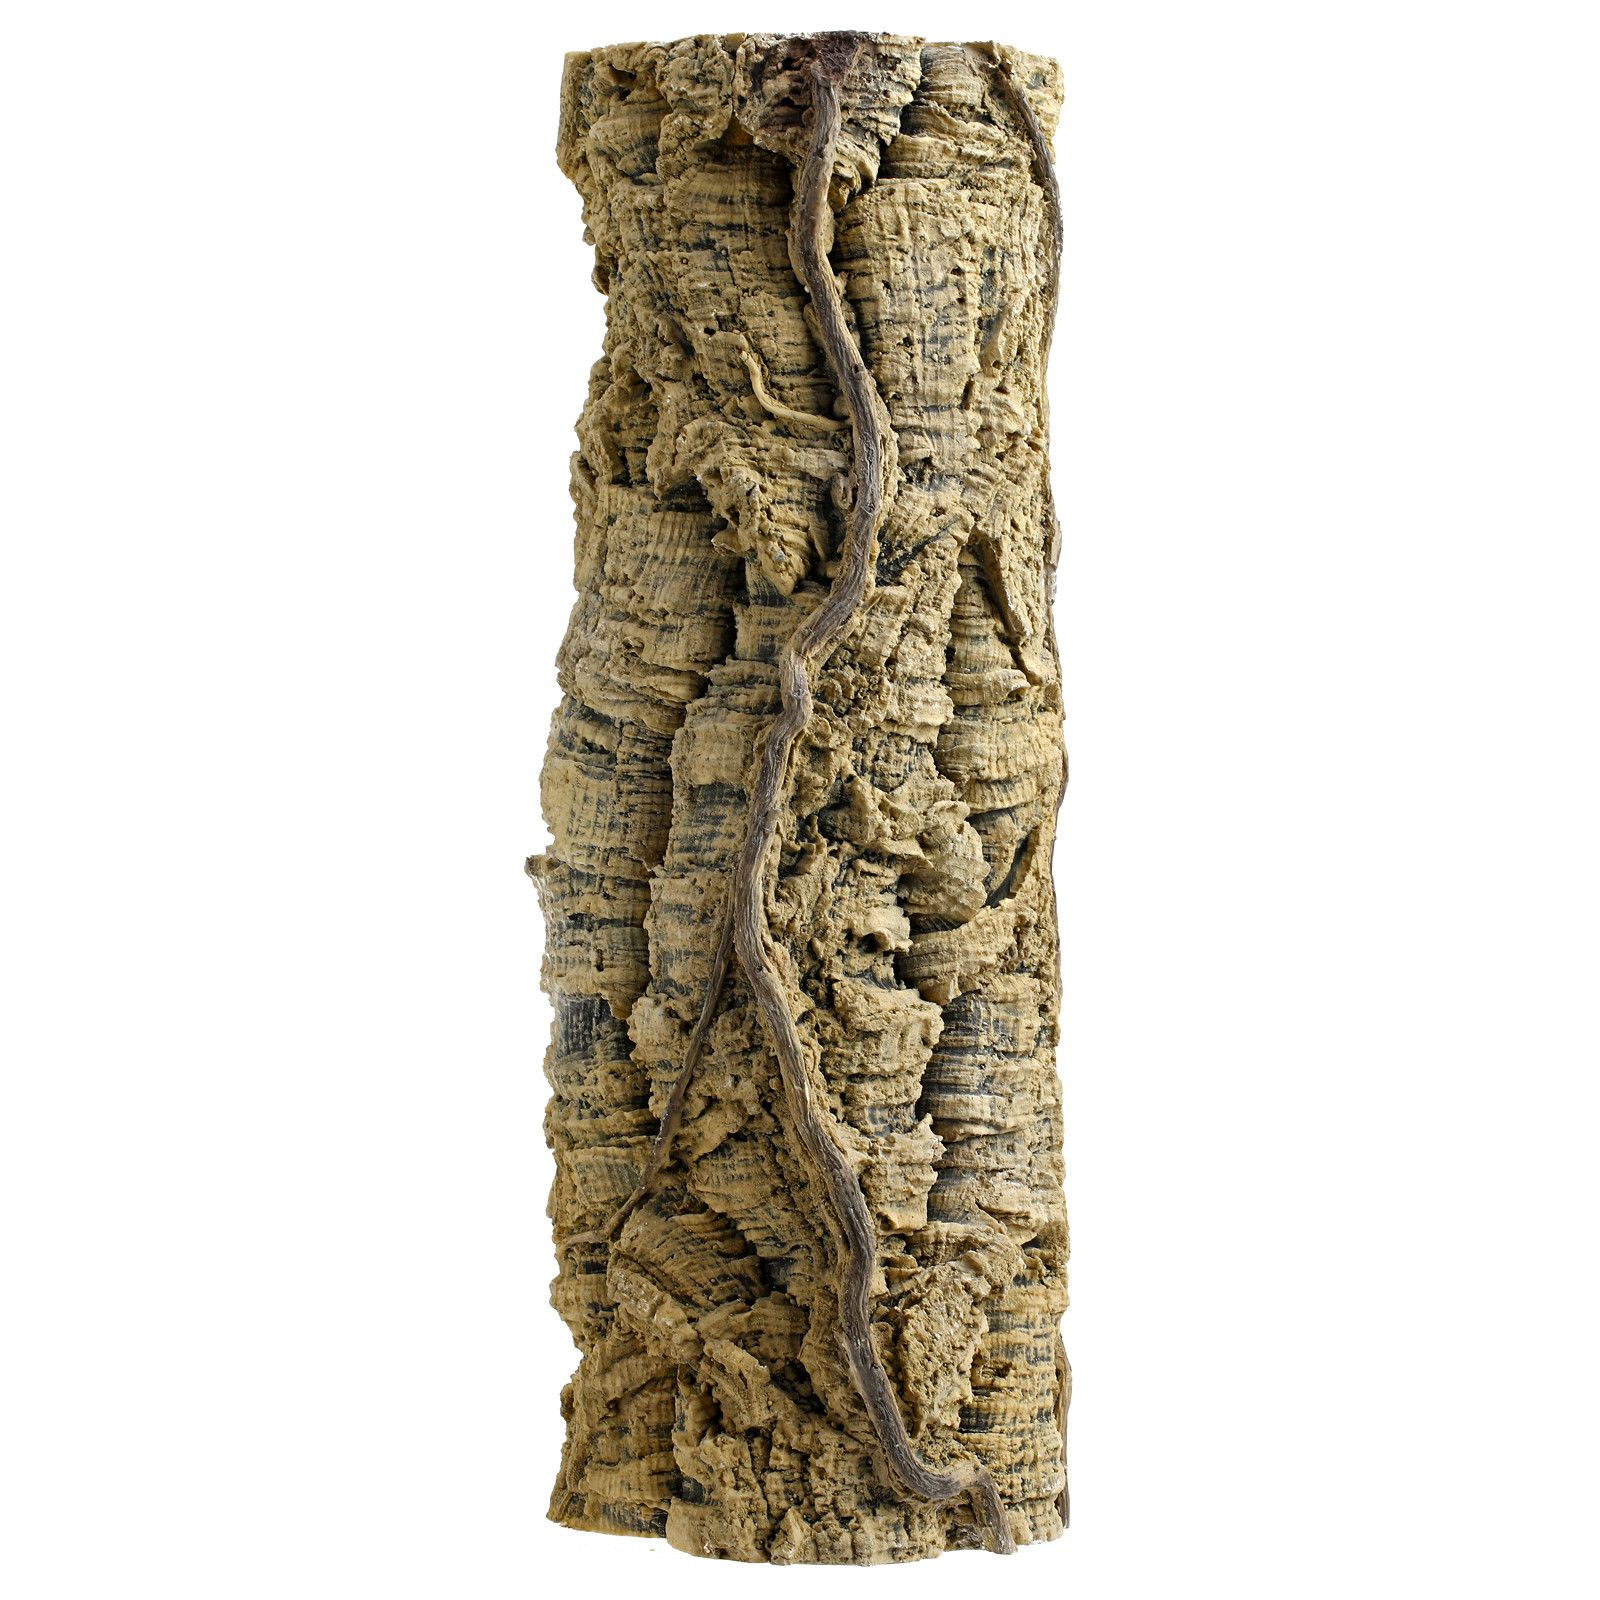 Back to Nature - Liana tree trunk